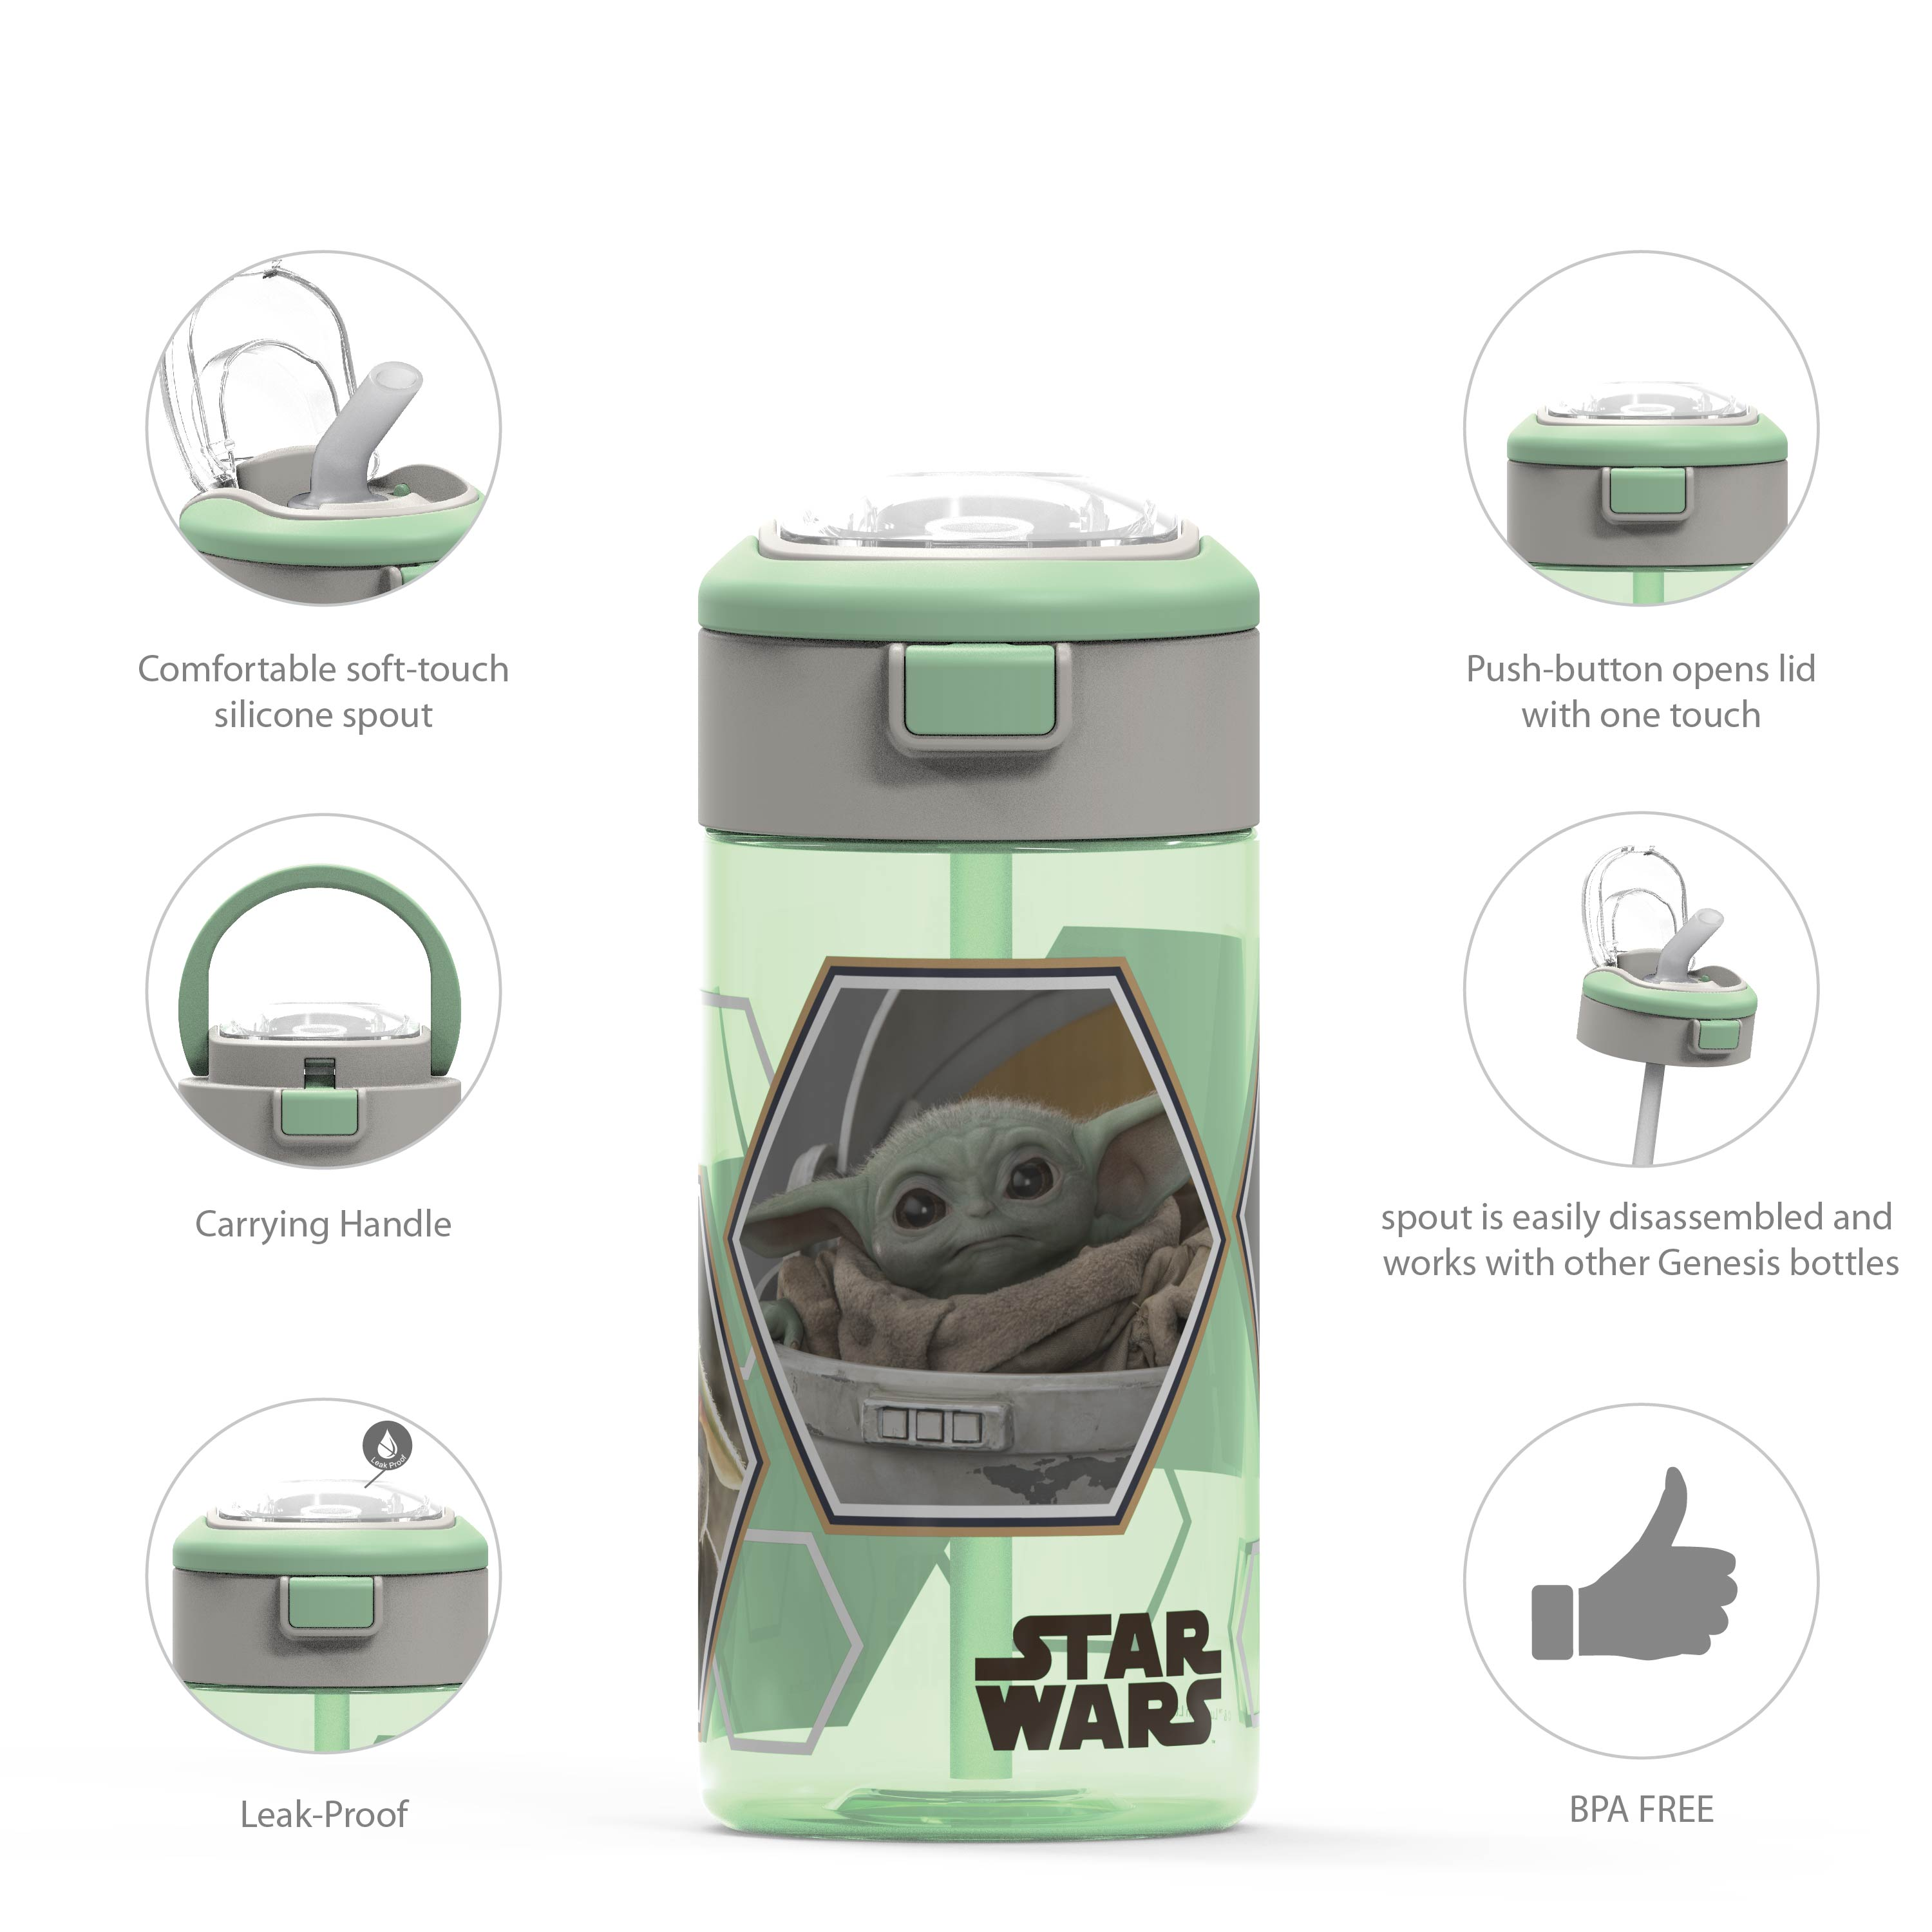 Star Wars: The Mandalorian 18 ounce Reusable Water Bottle with Straw, The Mandalorian slideshow image 4